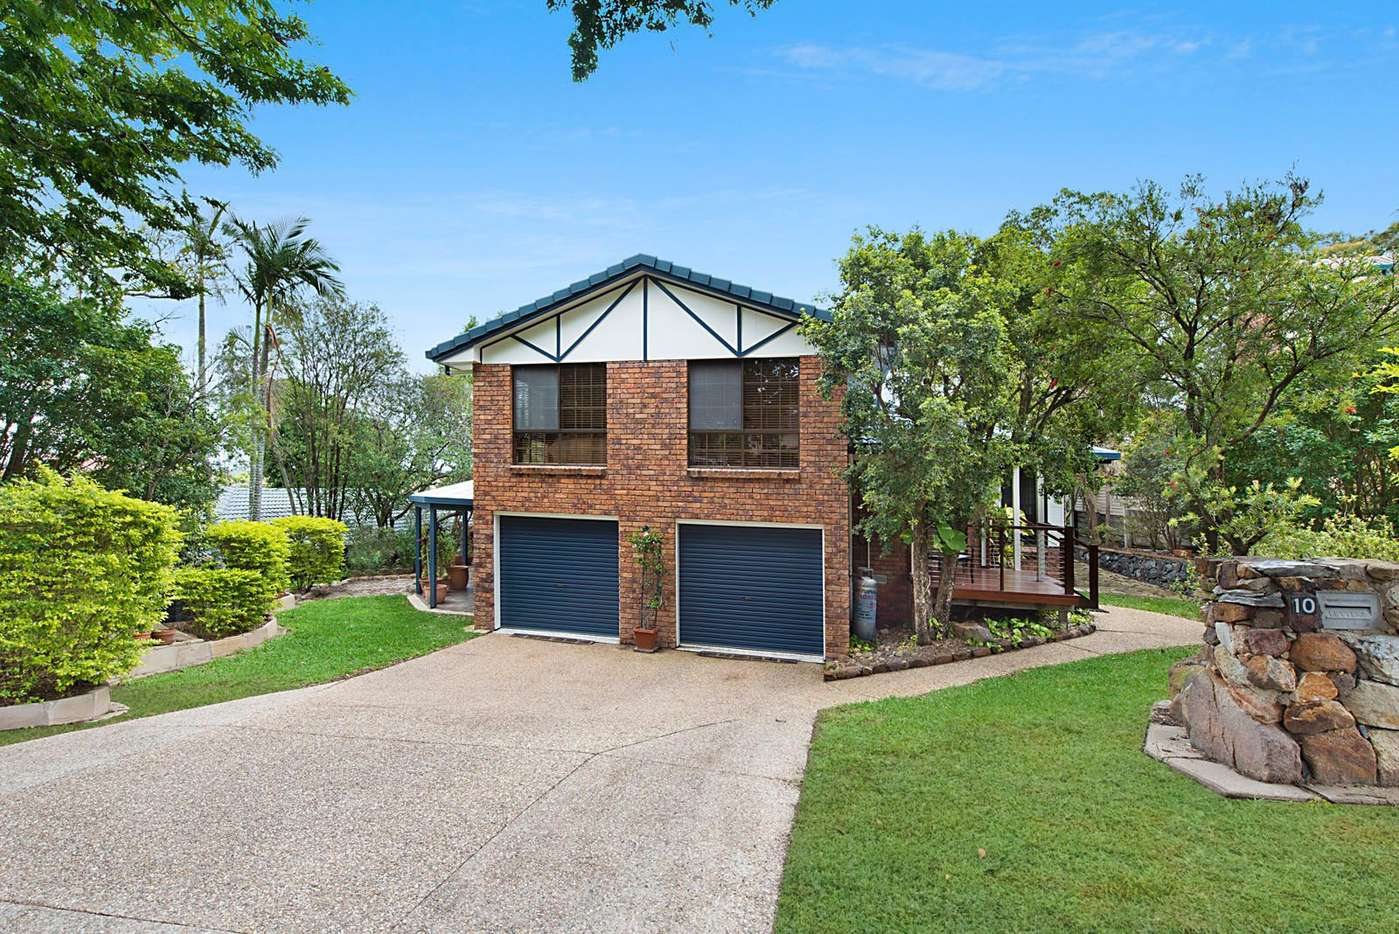 Main view of Homely house listing, 10 Merrick Street, Wishart, QLD 4122